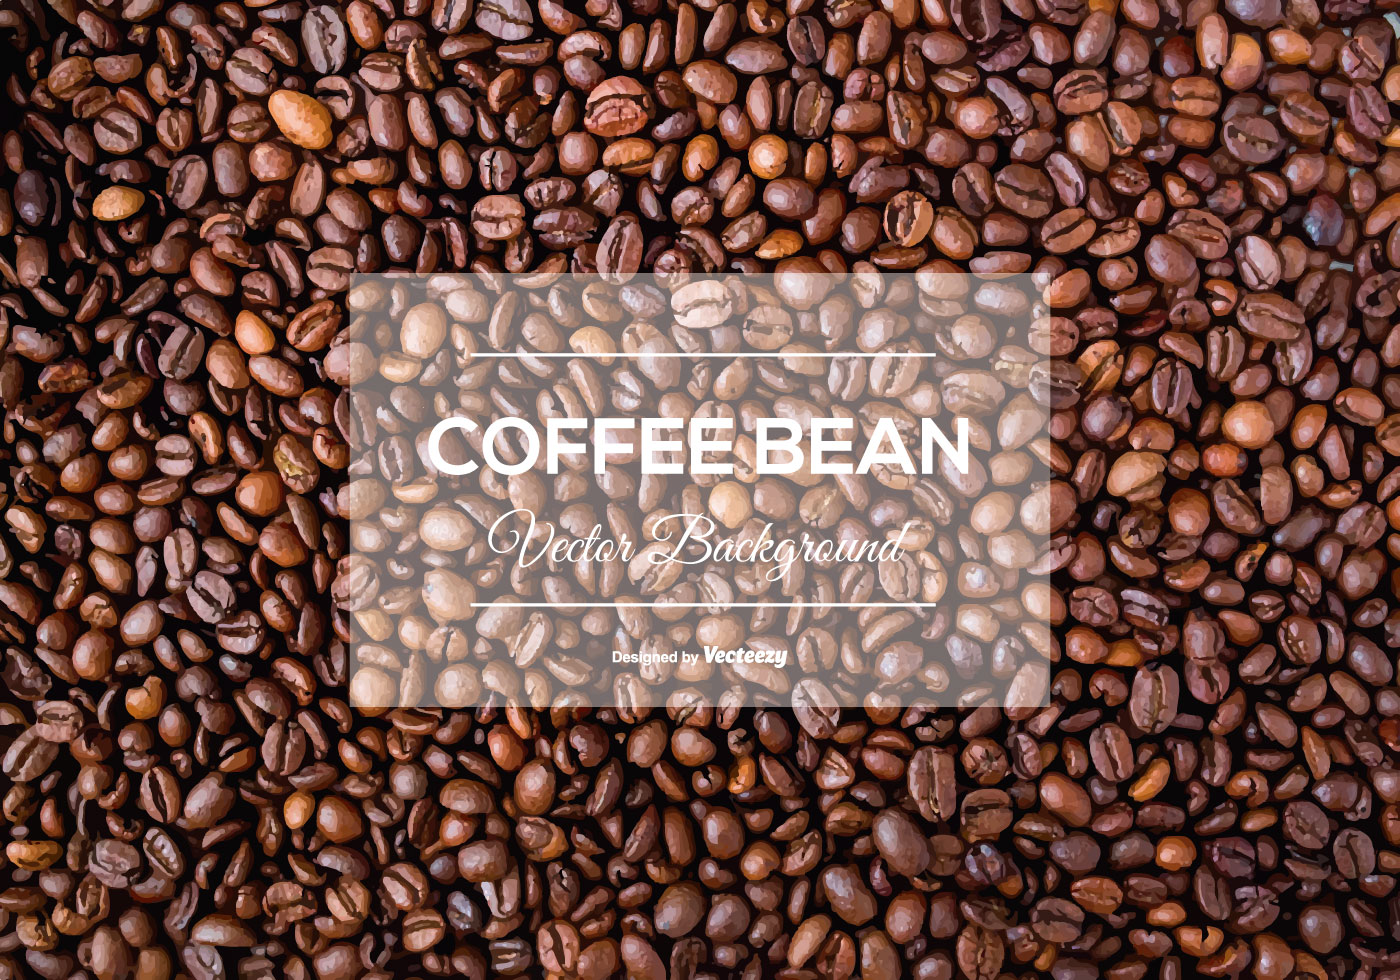 coffee bean background texture download free vectors clipart graphics vector art https www vecteezy com vector art 115038 coffee bean background texture